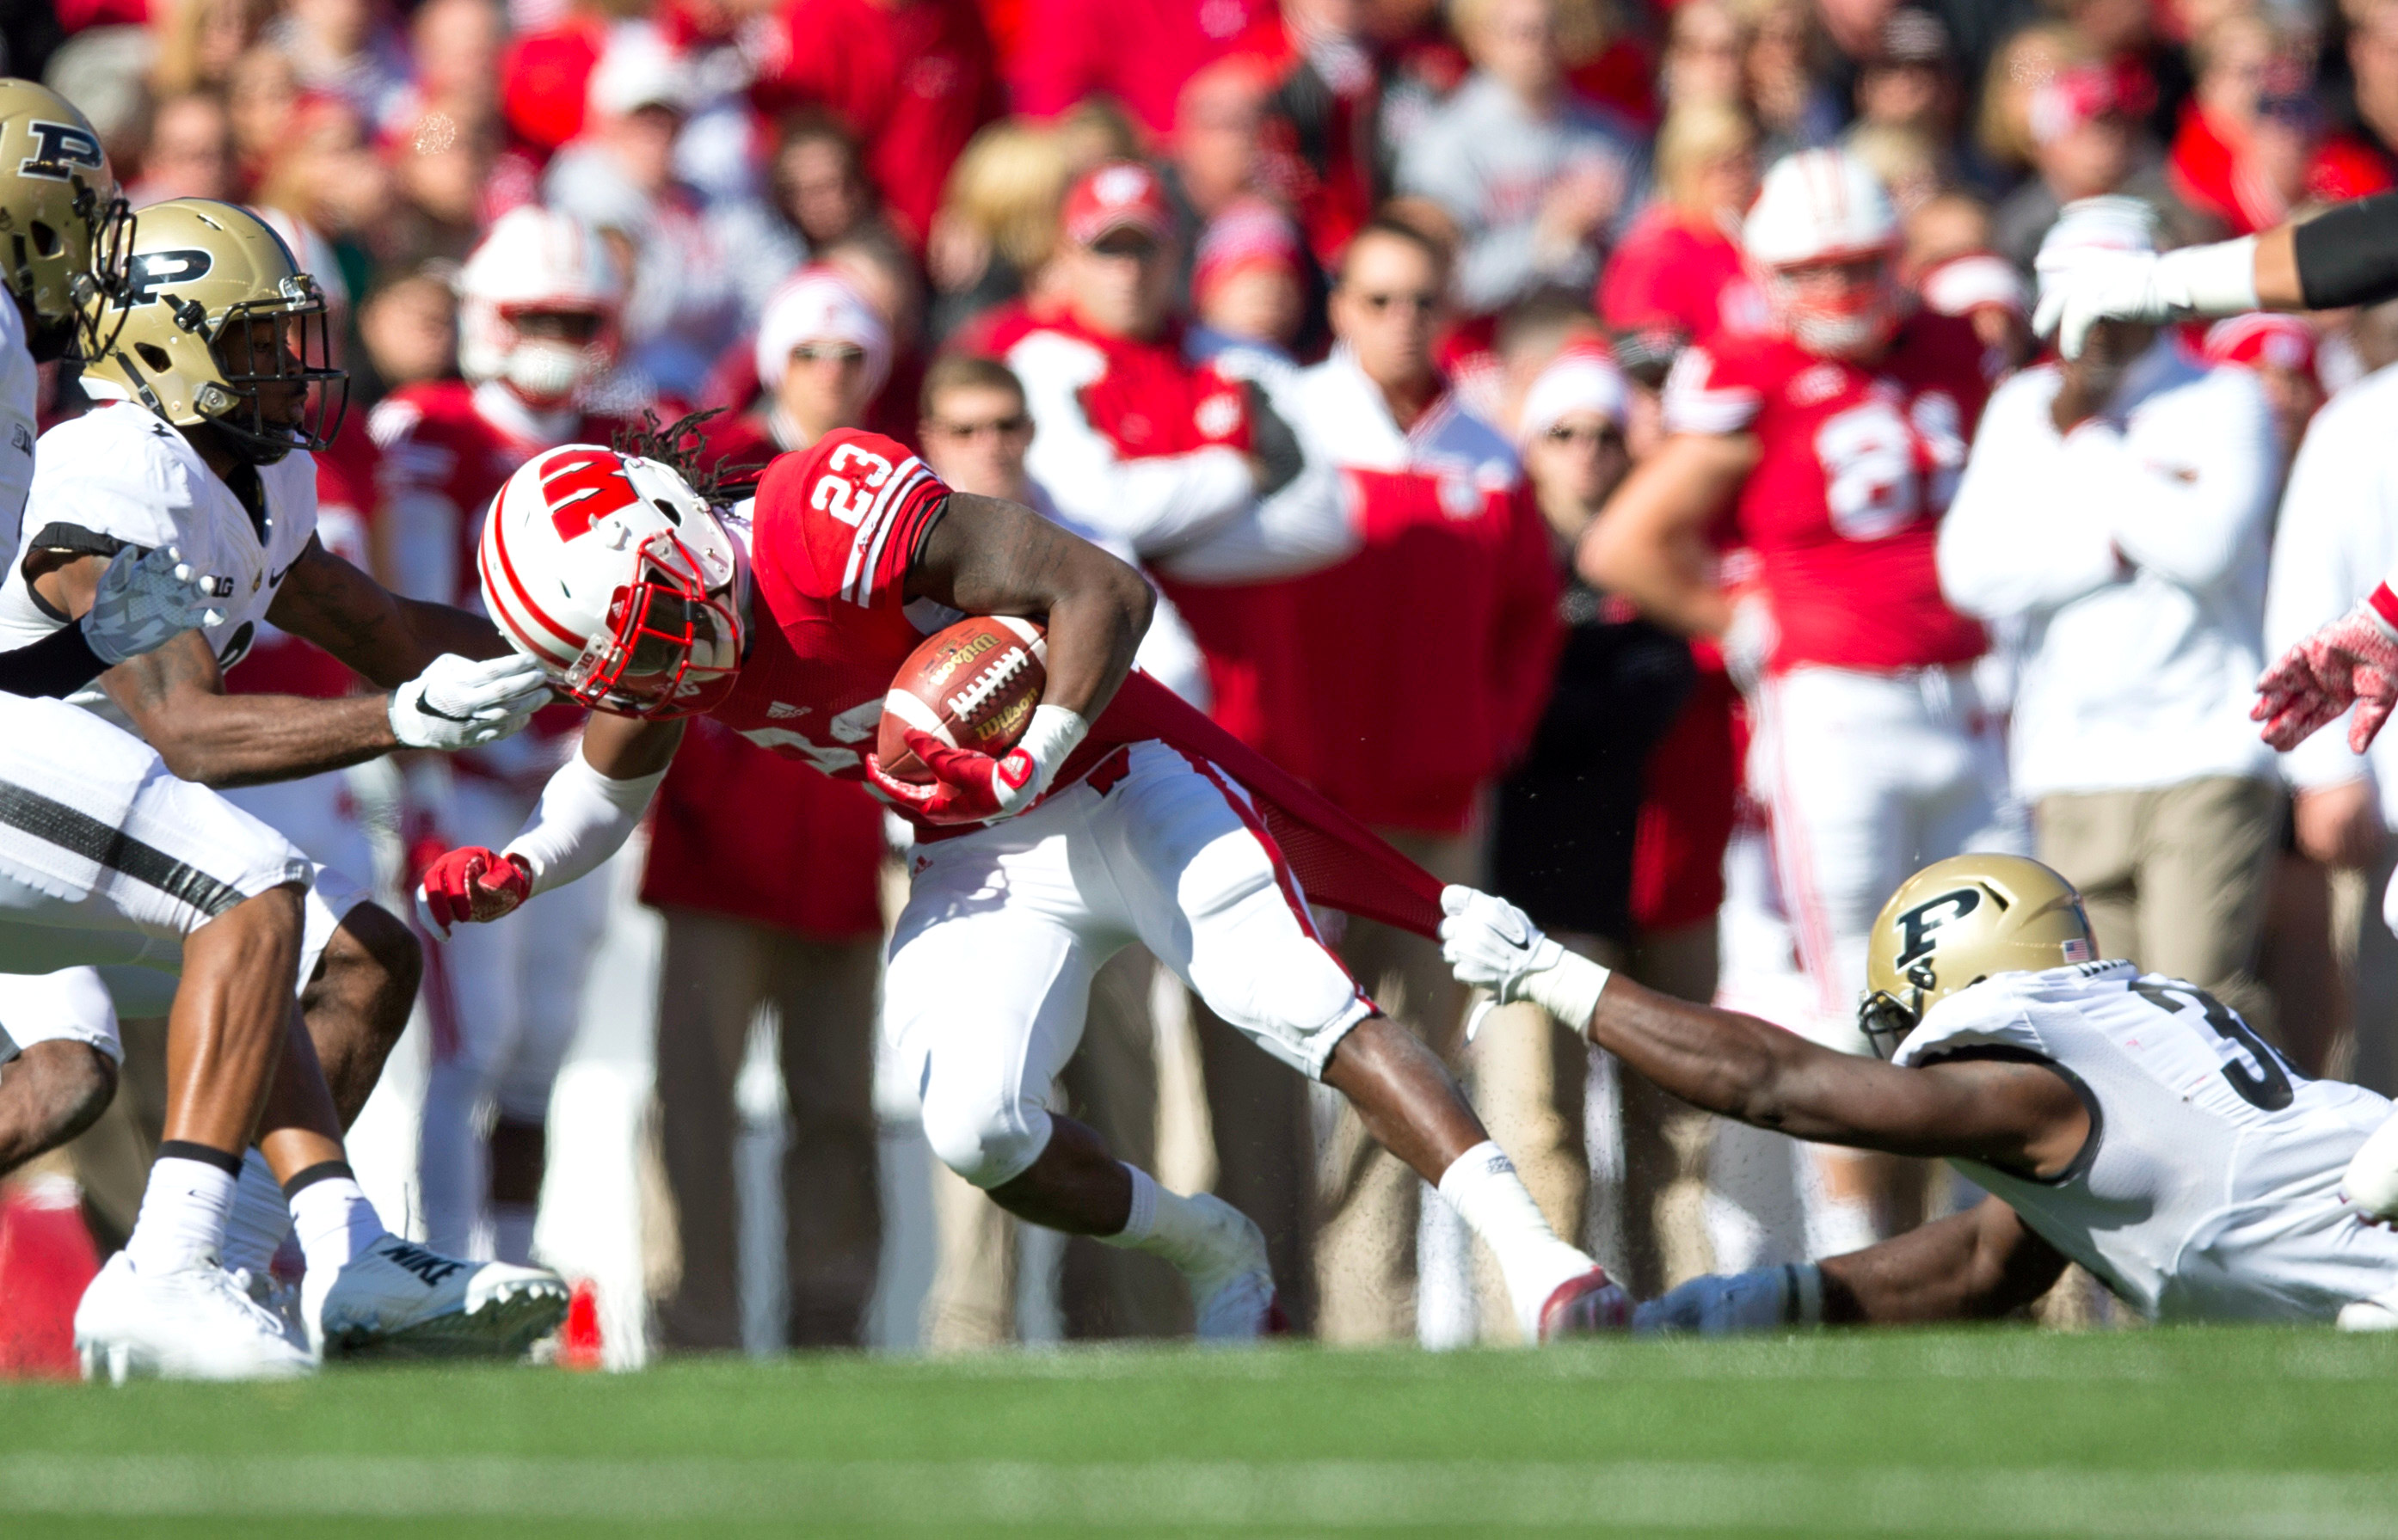 Oct 17, 2015; Madison, WI, USA; Wisconsin Badgers running back Dare Ogunbowale (23) rushes with the football as Purdue Boilermakers linebacker Danny Ezechukwu (36) defends during the third quarter at Camp Randall Stadium.  Wisconsin won 24-7.